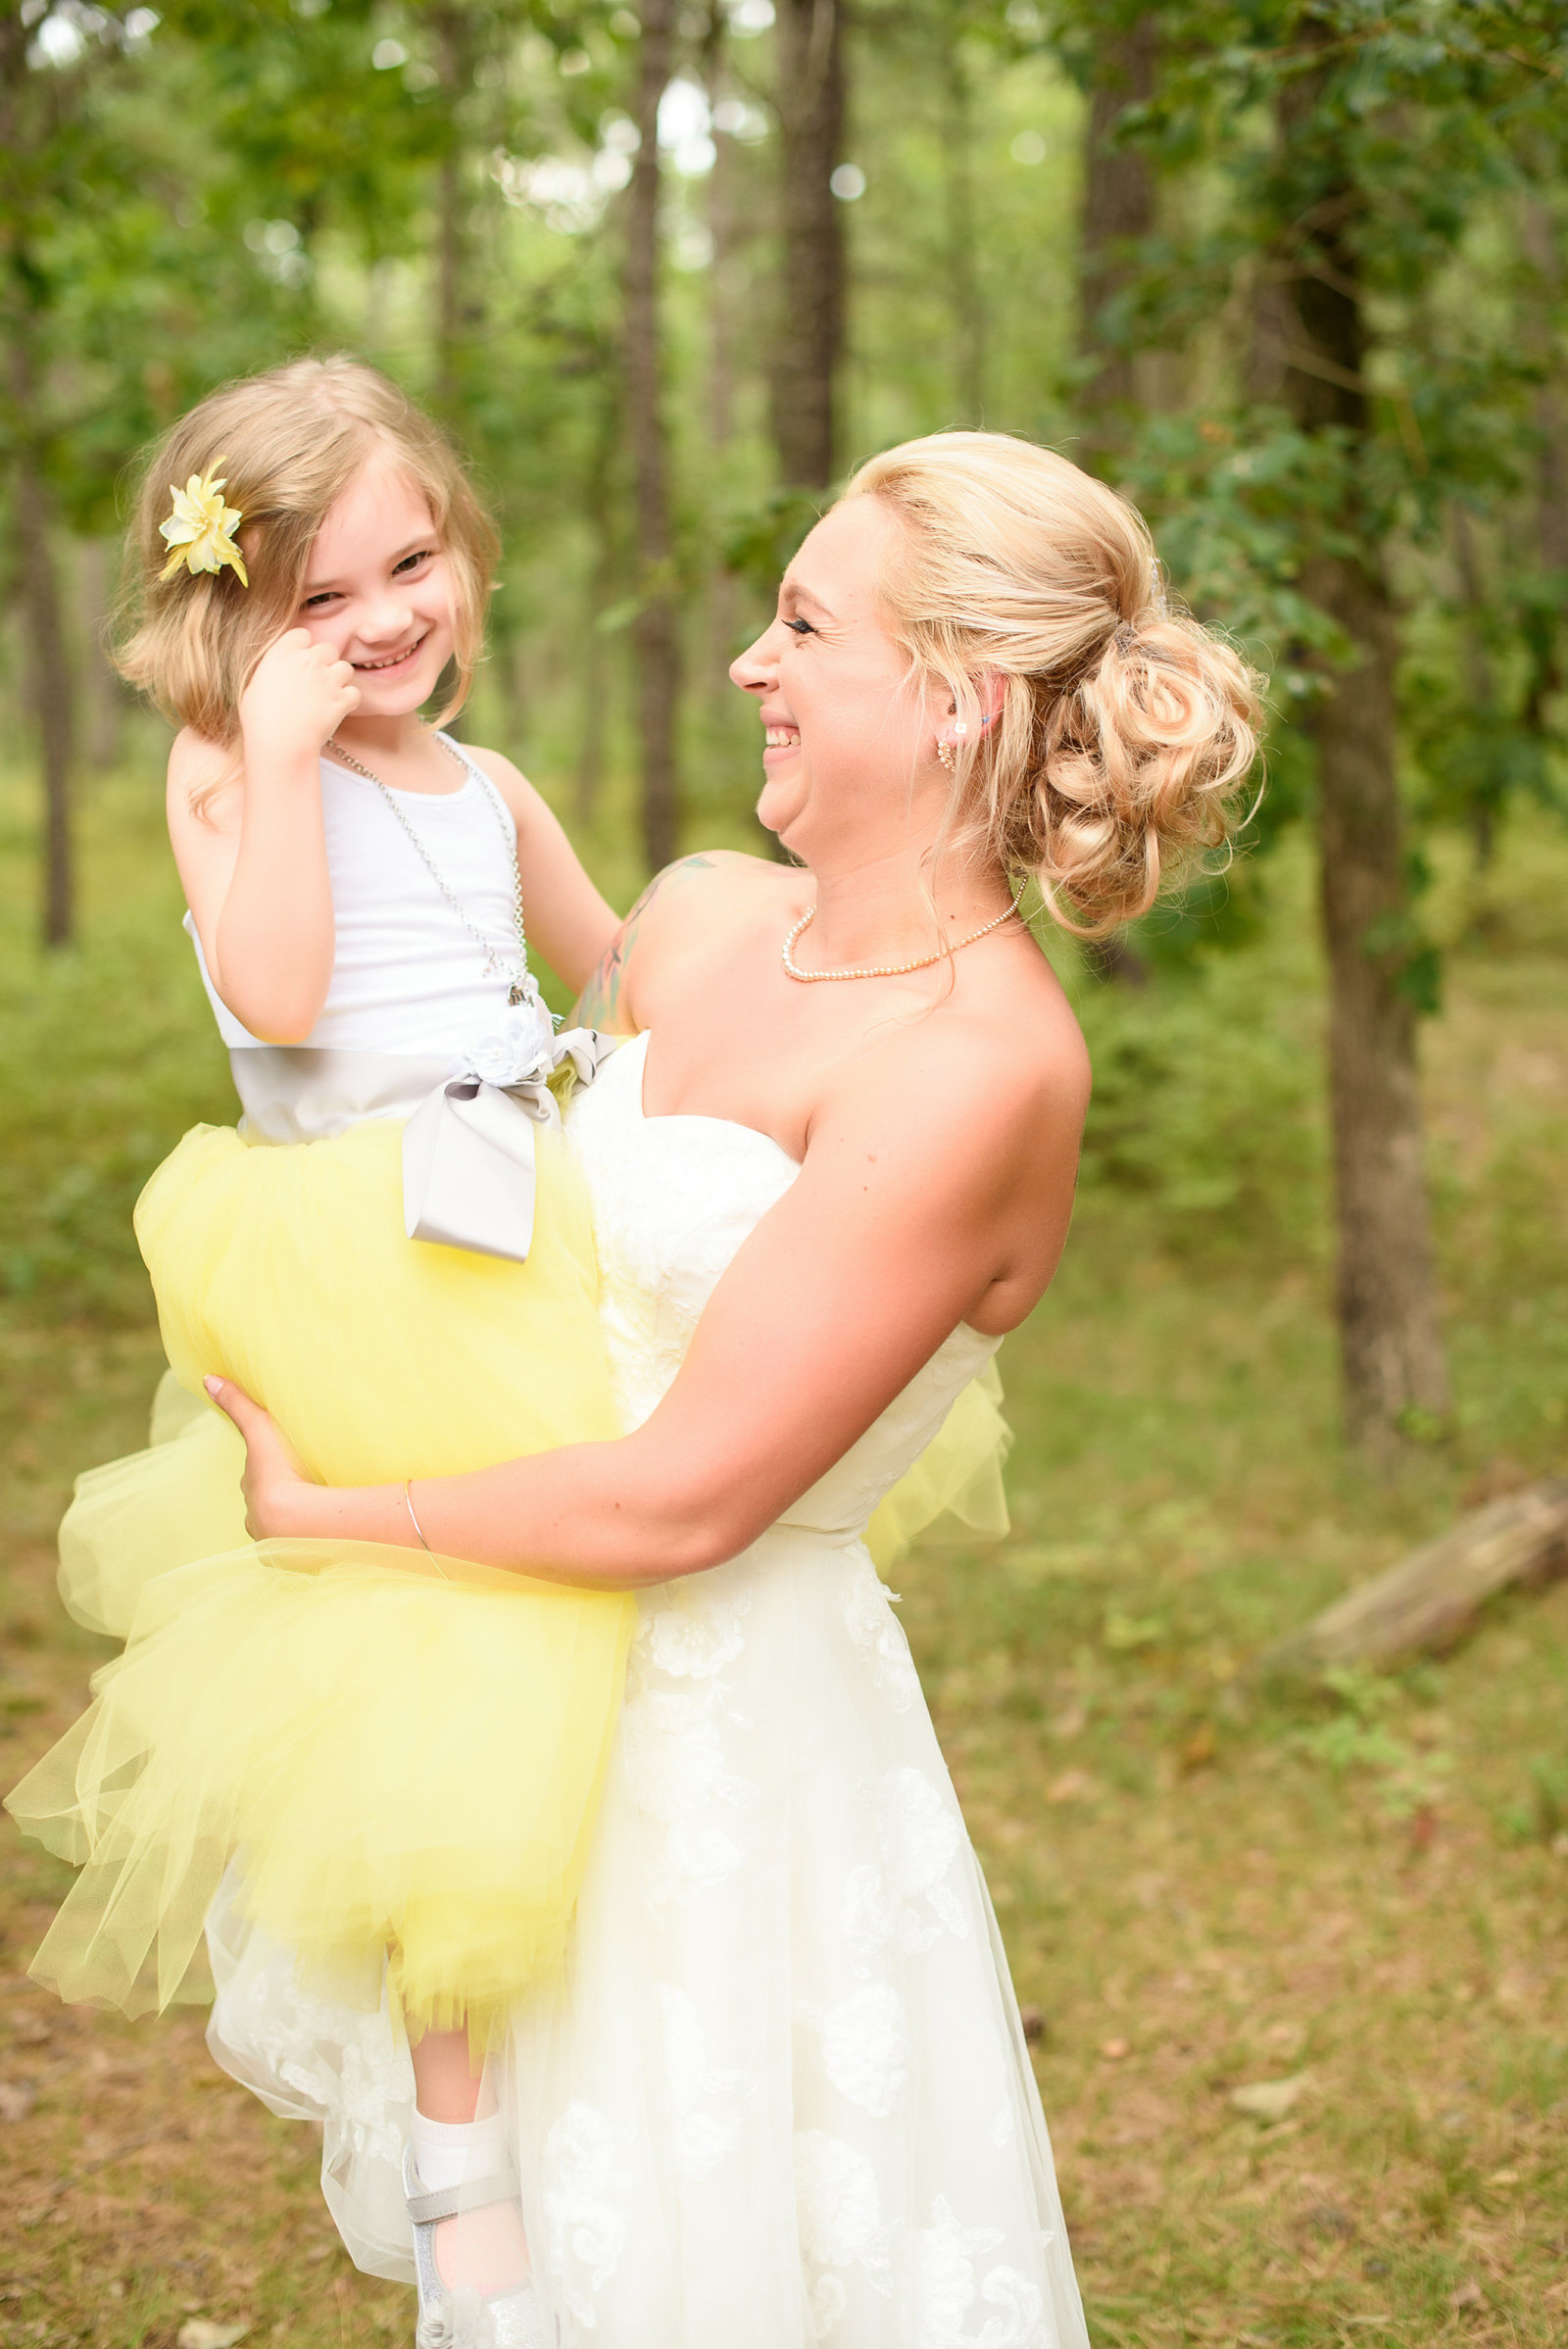 Sam&Zig_Whimsical_NJ_Wedding-110